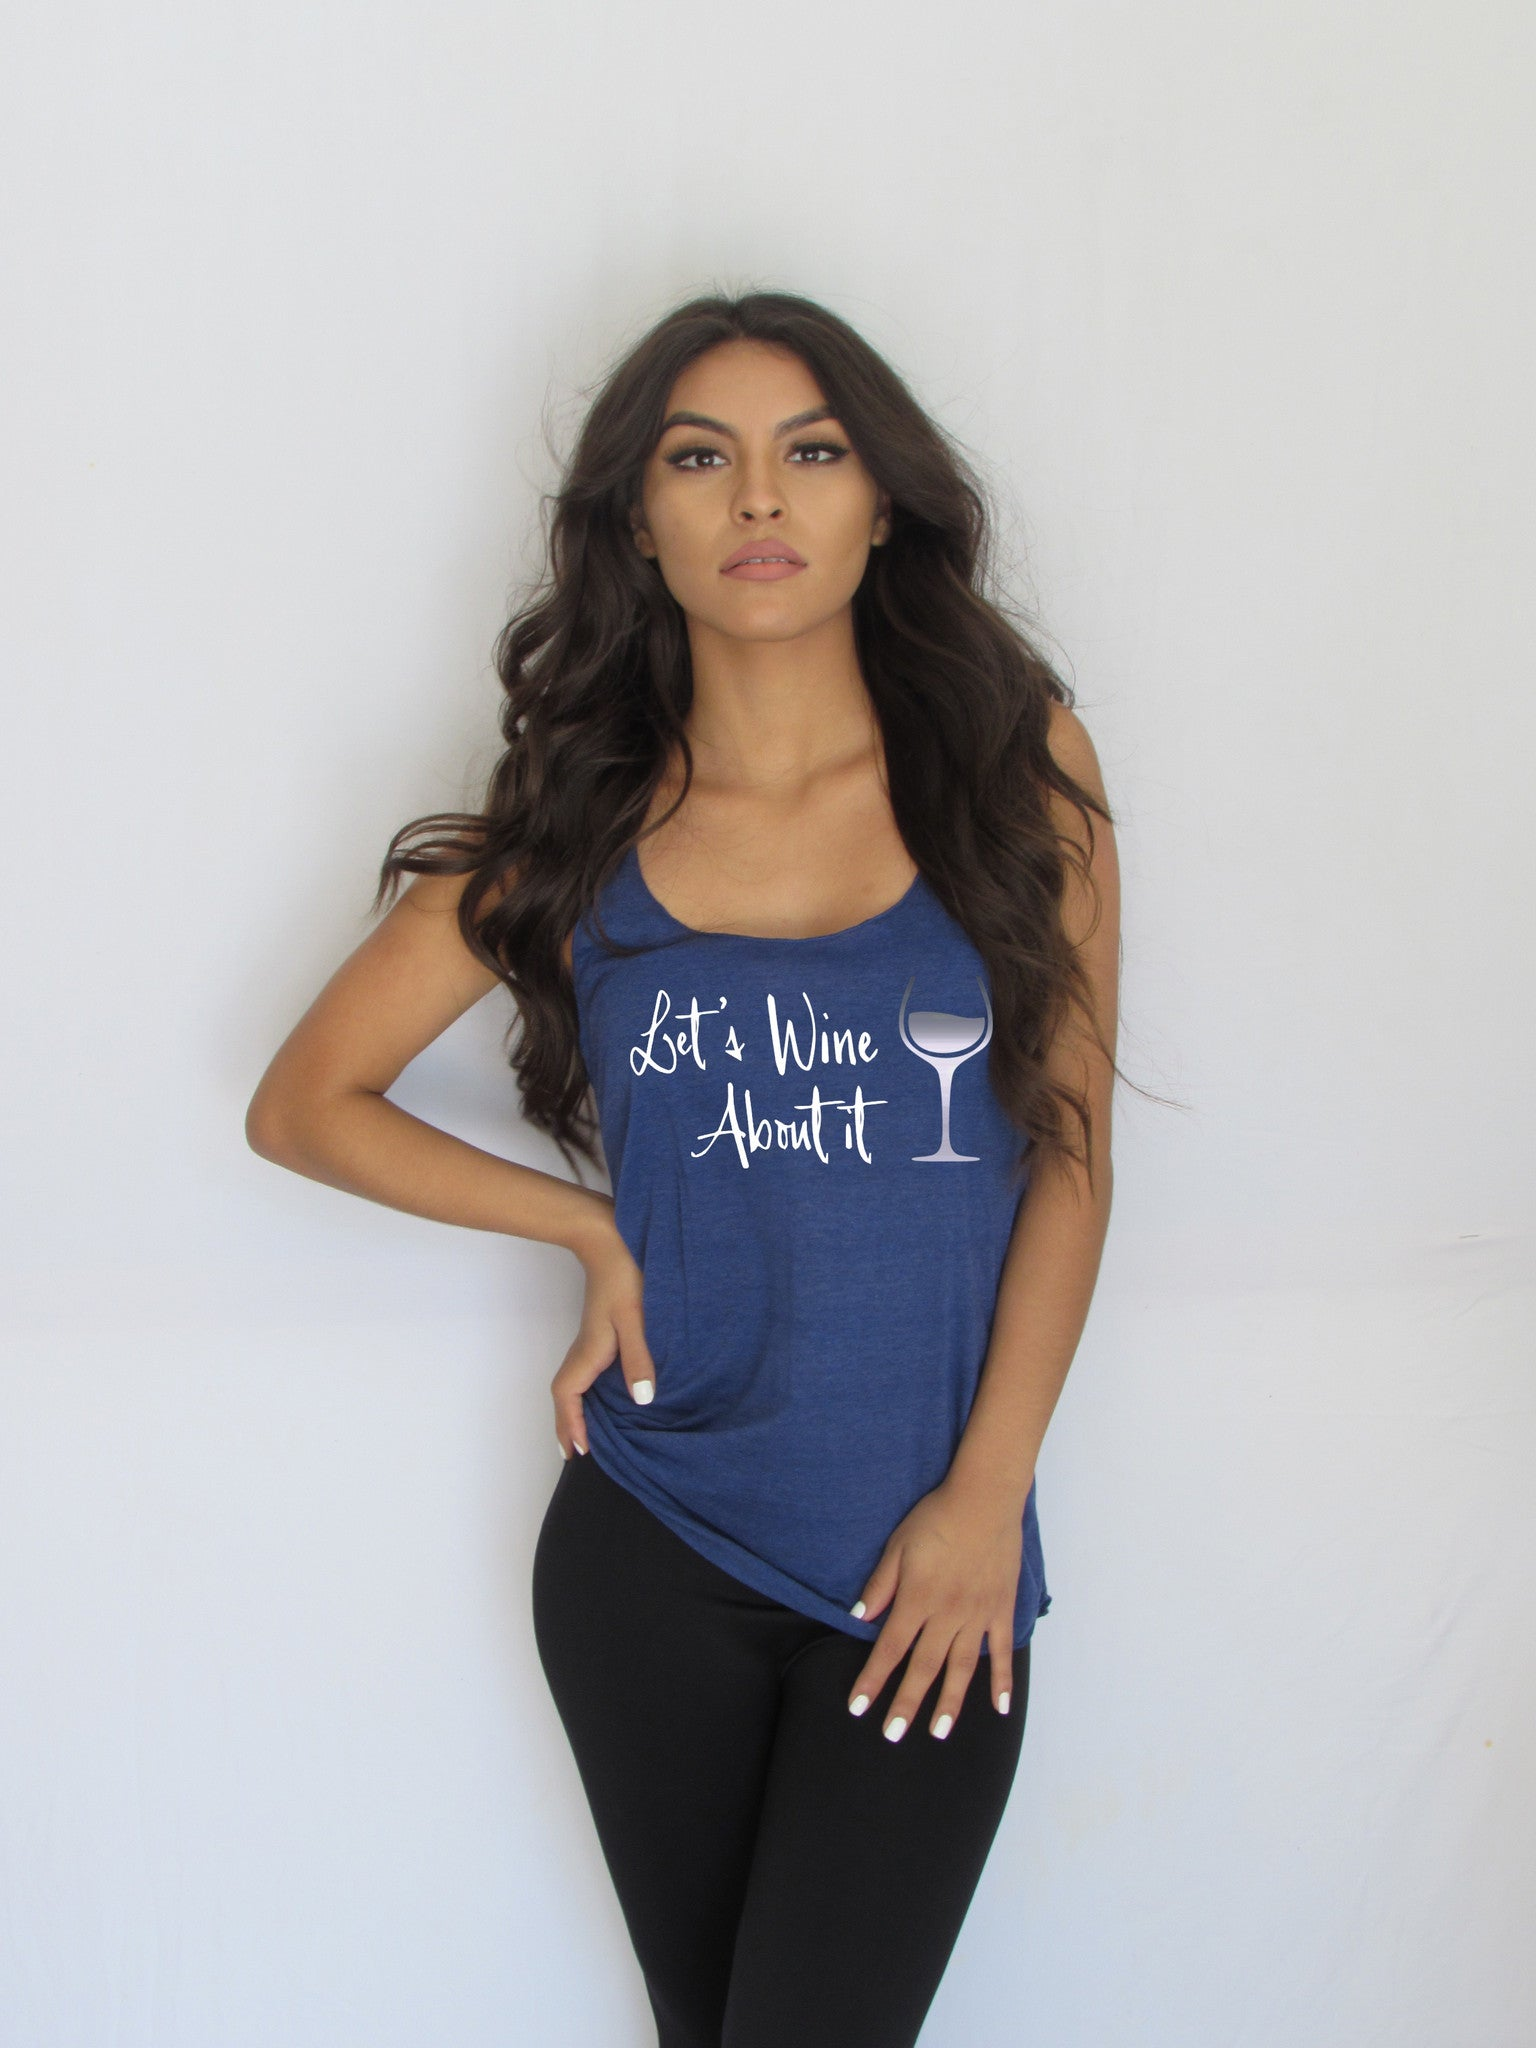 Let's wine about it Women's Loose Racerback Tank made by Think Elite.